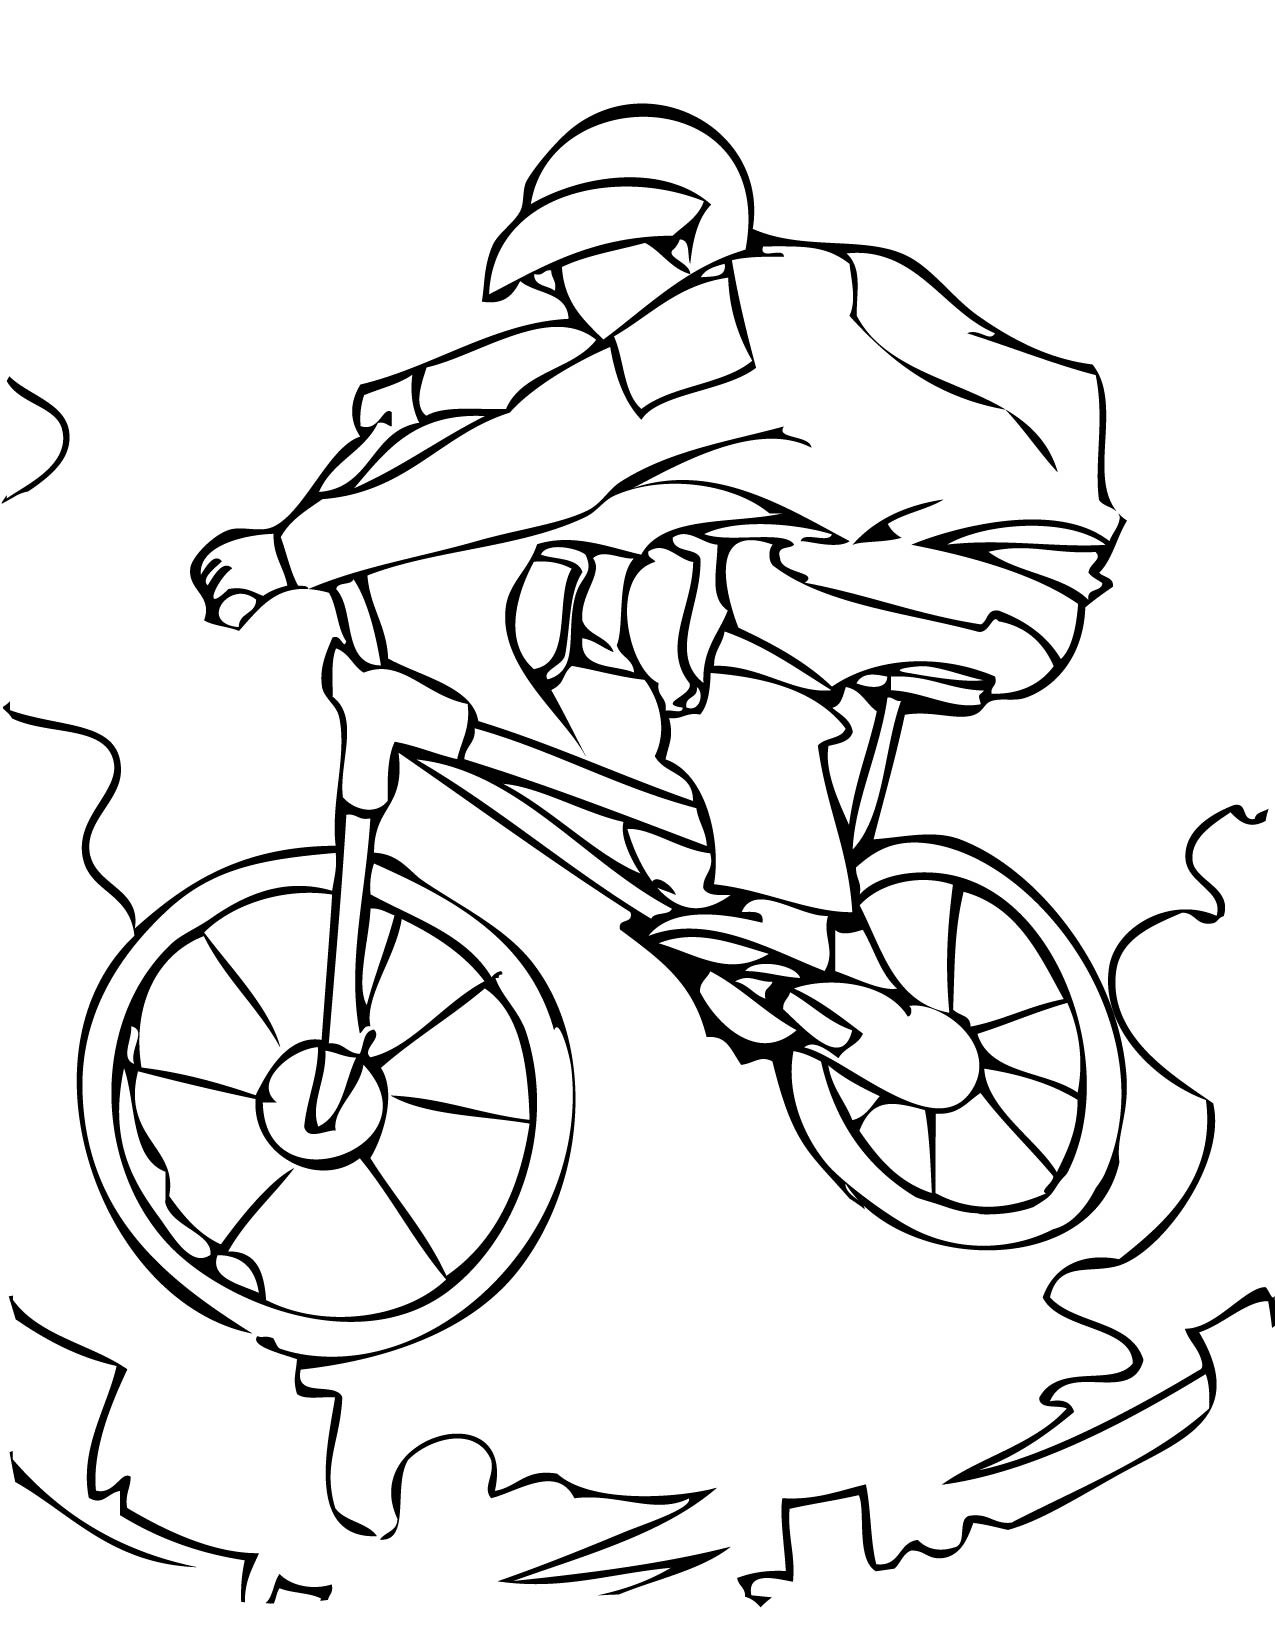 1275x1650 Mountain Biking Free Coloring Page Kids, Sports Coloring Pages